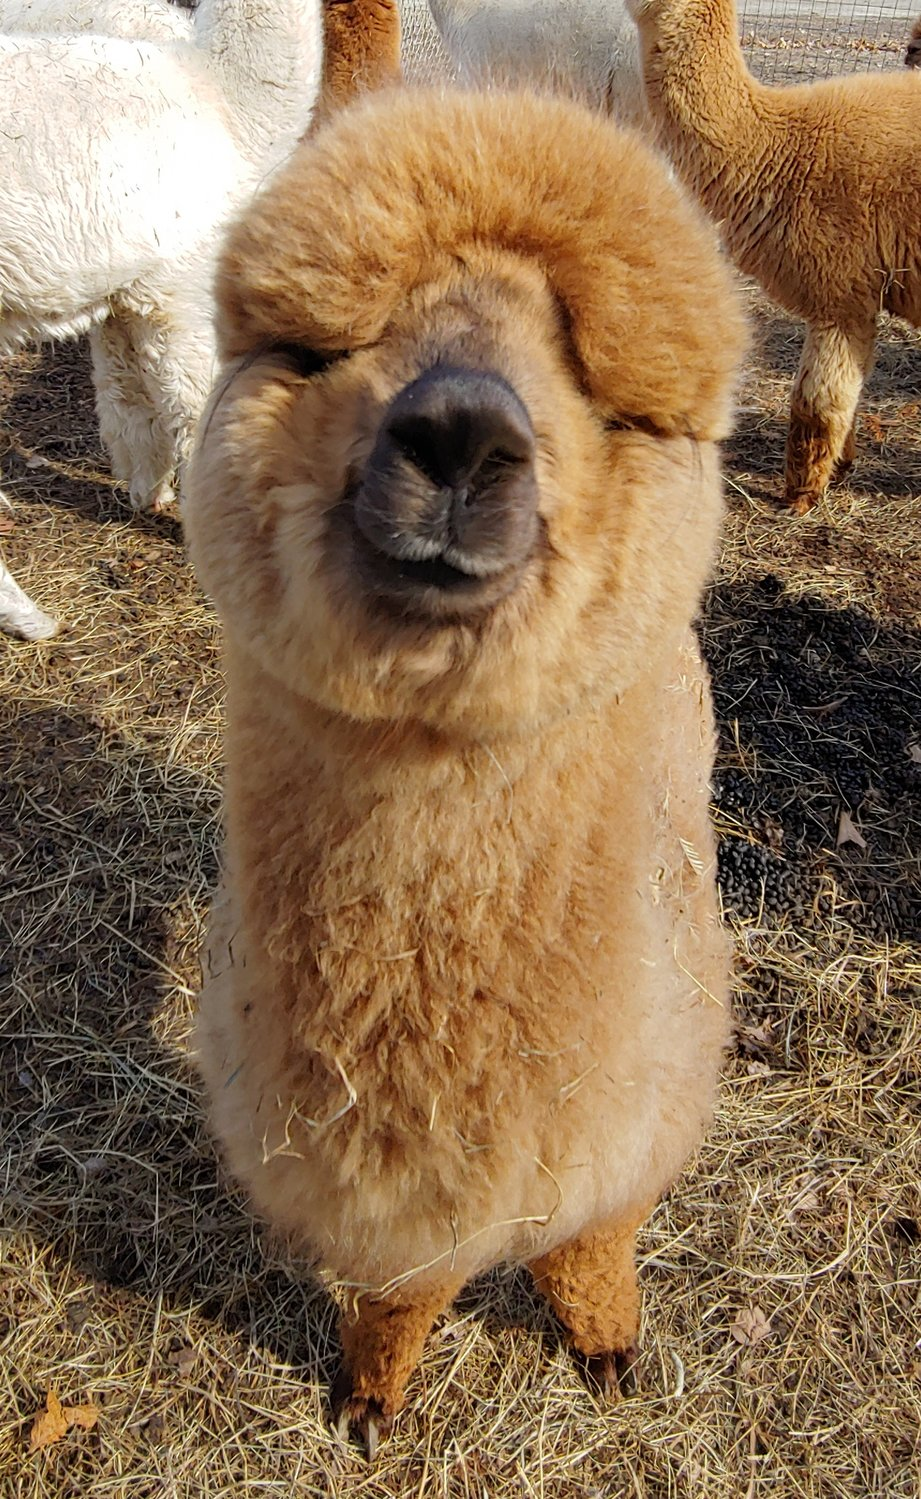 An alpaca baby is called a cria (cree-ya).